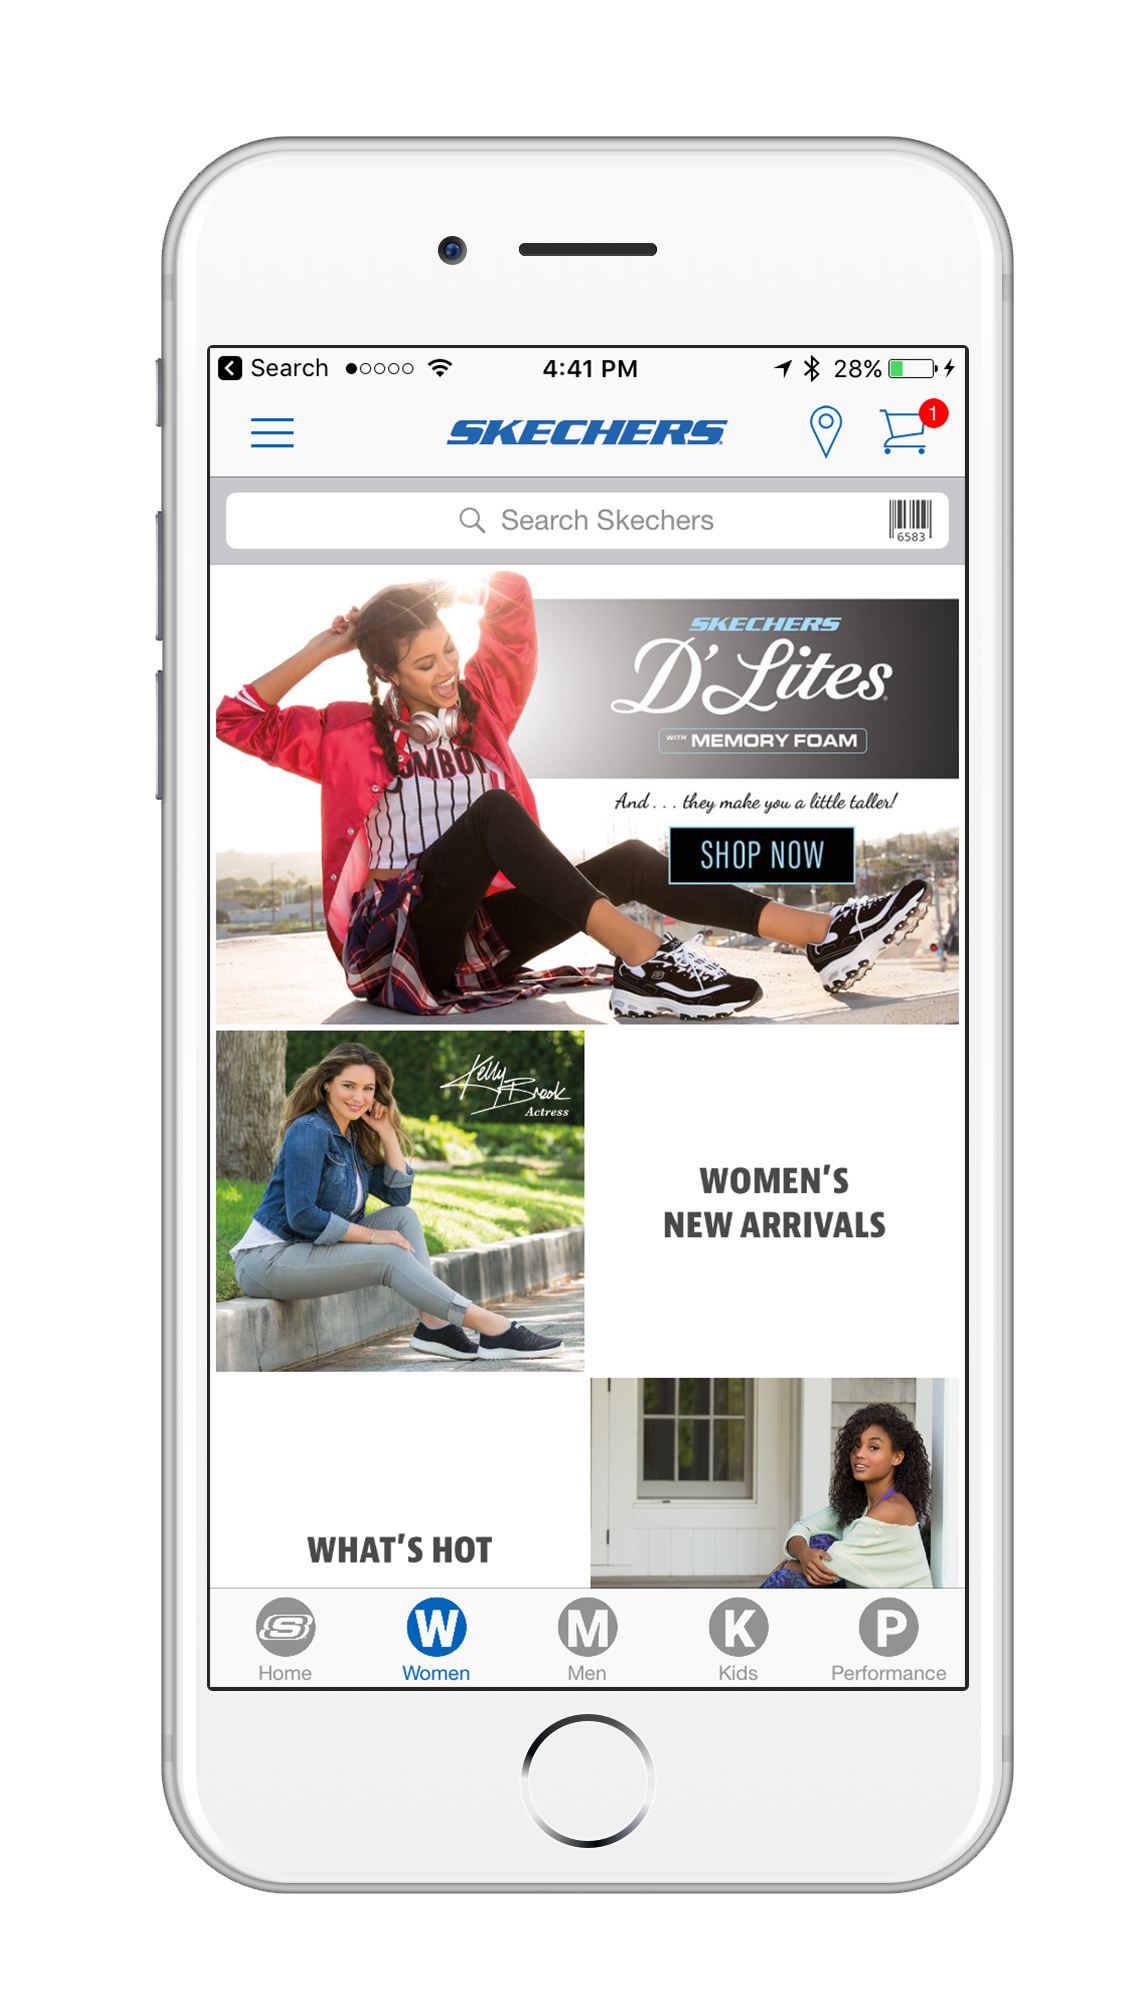 SKECHERS Launches Mobile App to